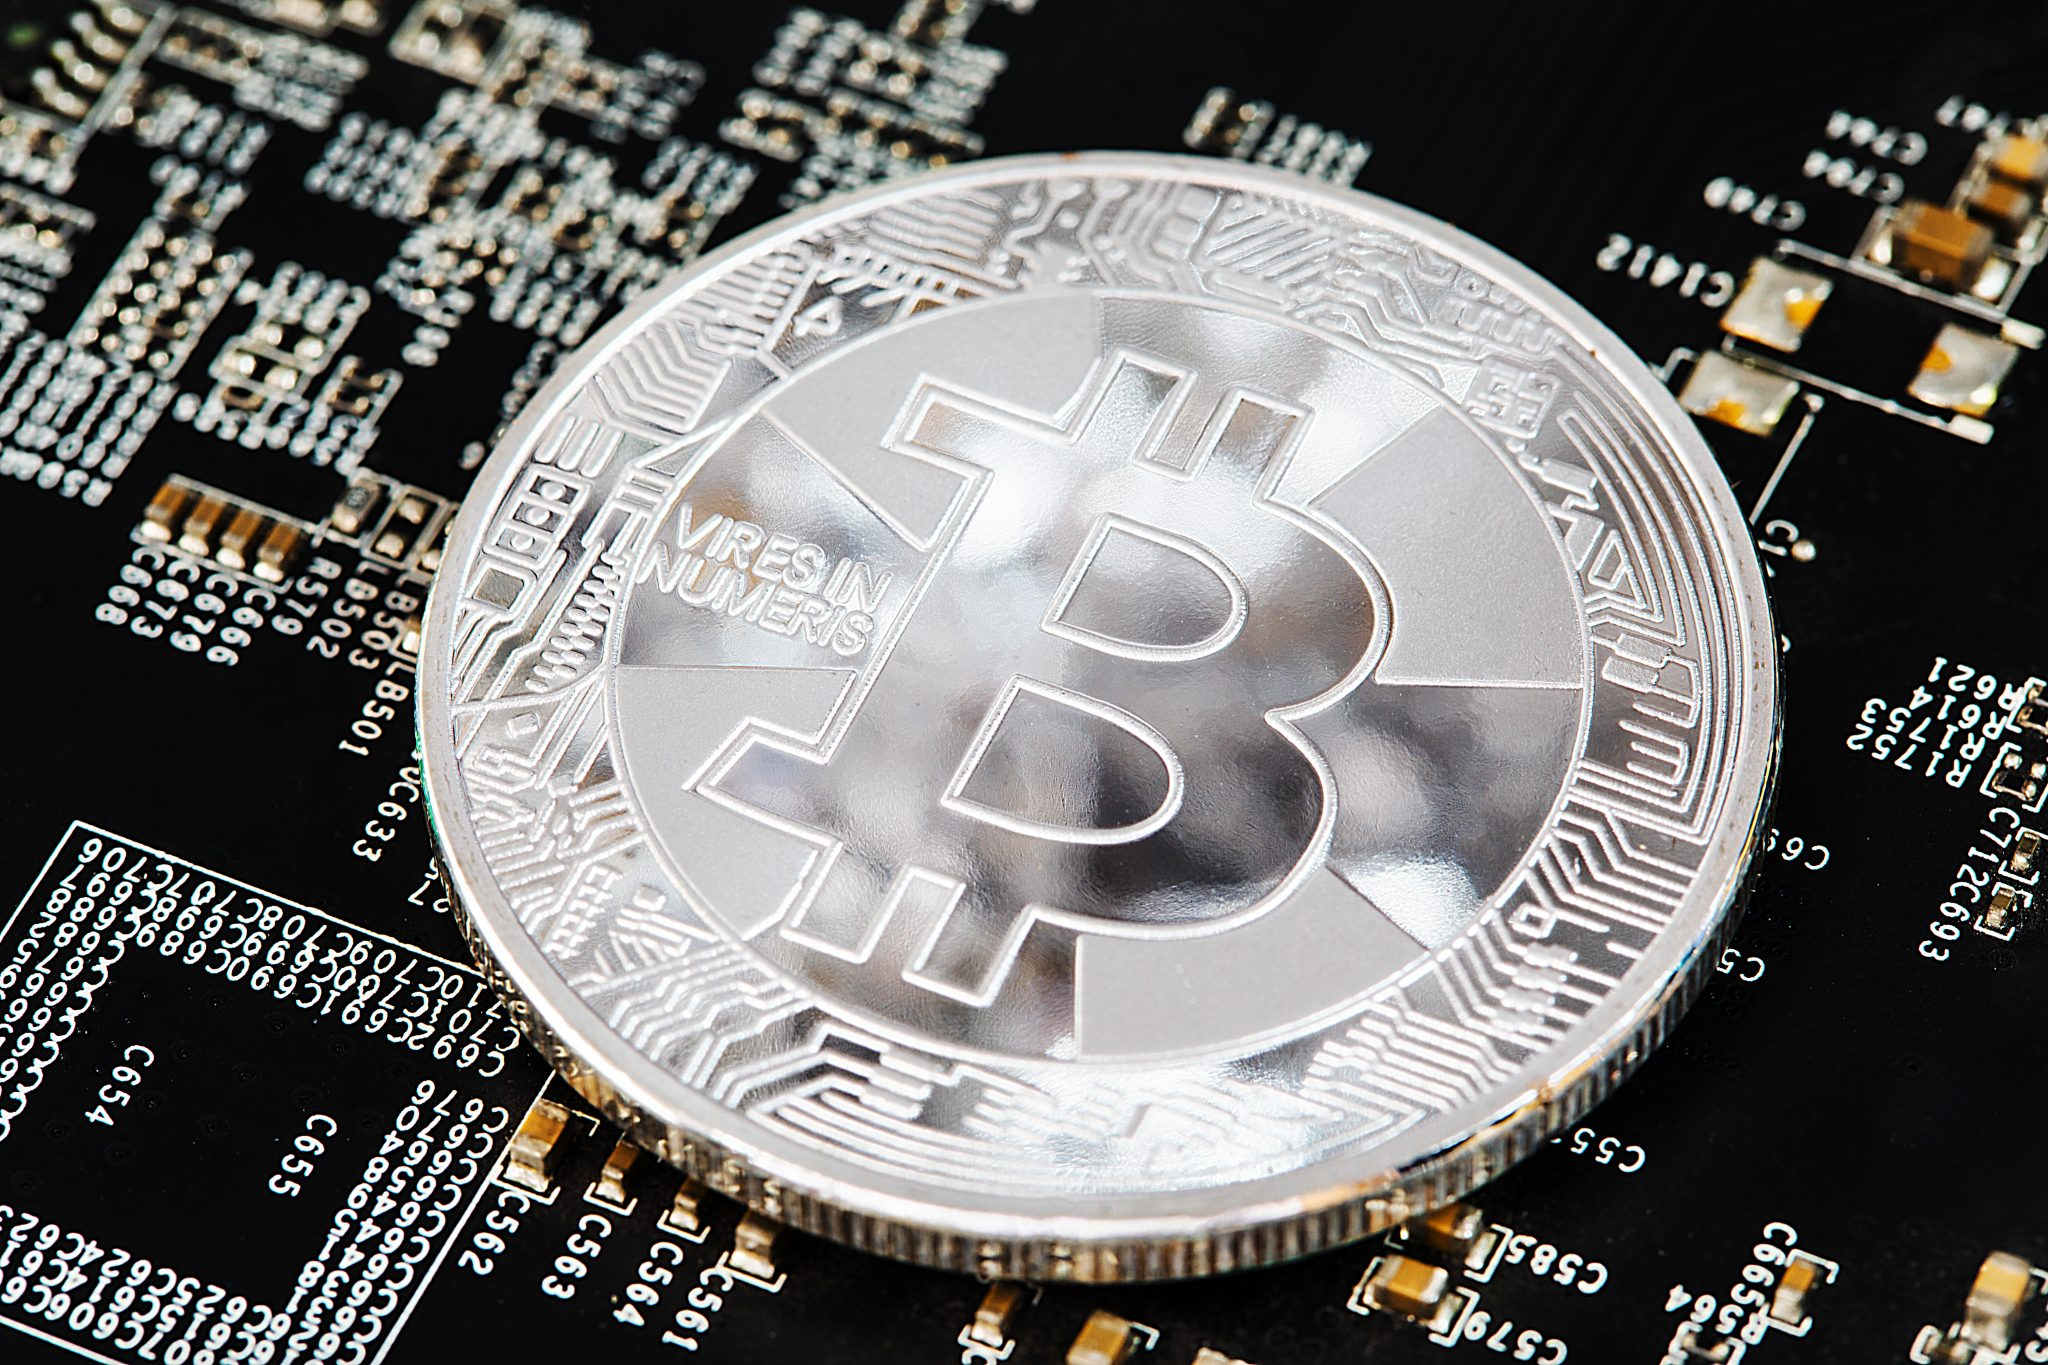 Bitcoin Cryptocurrency Digital Bit Coin BTC Currency Technology Business Internet Concept.